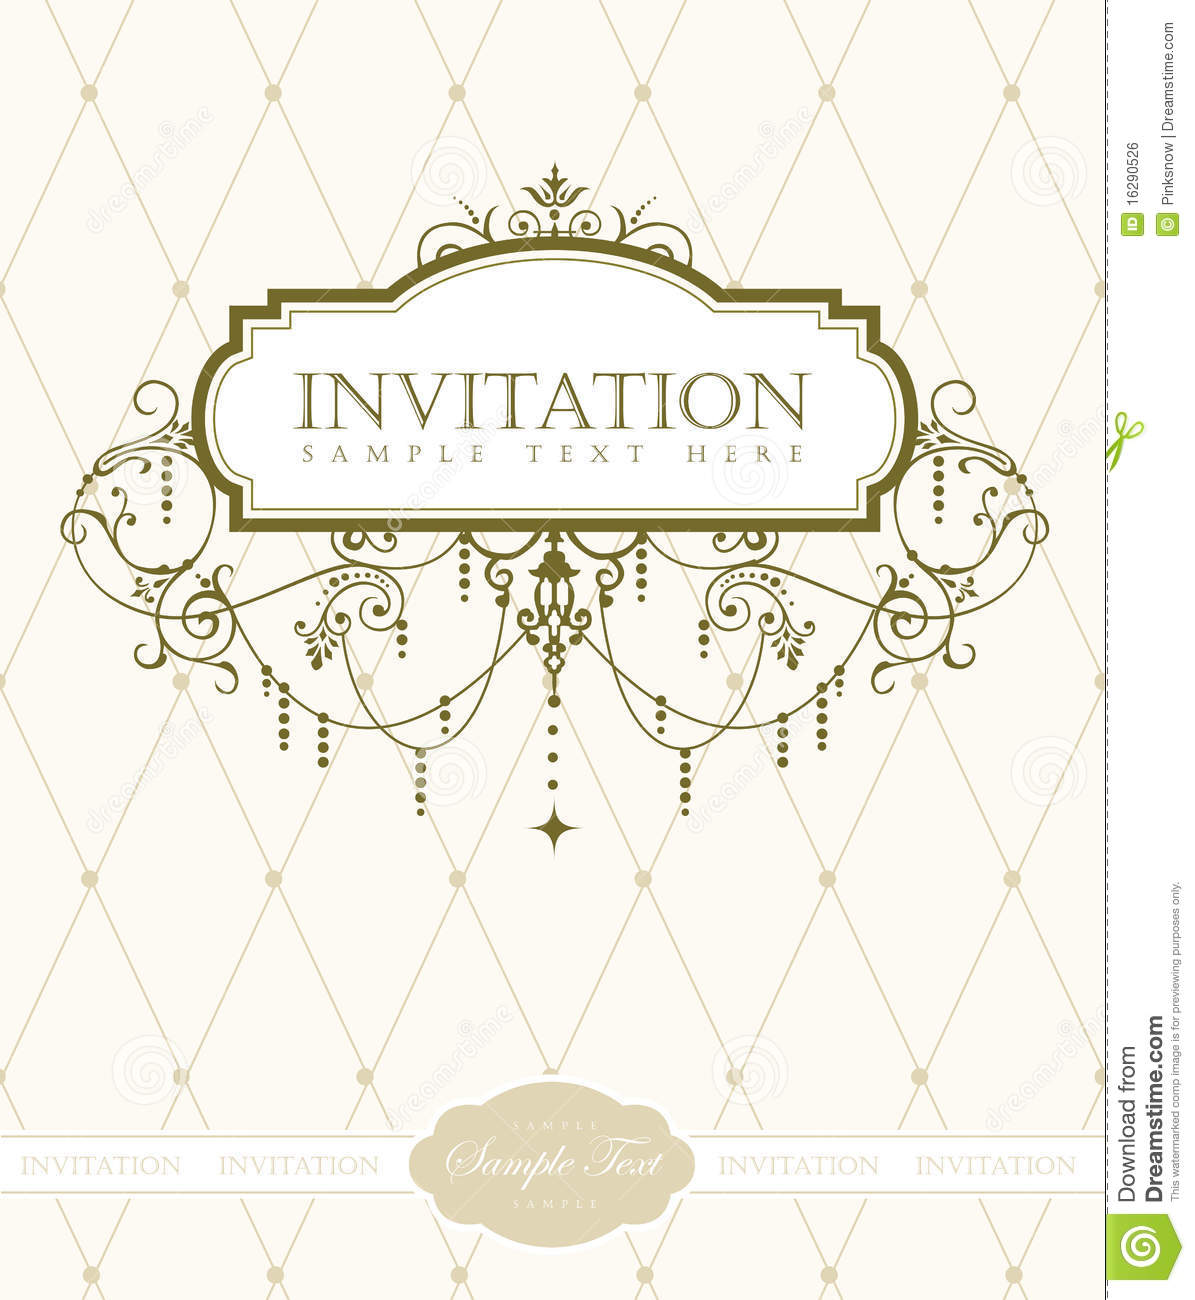 Free Invitation Design Templates Invitation Card Template Stock Vectorillustration Of Chandelier .